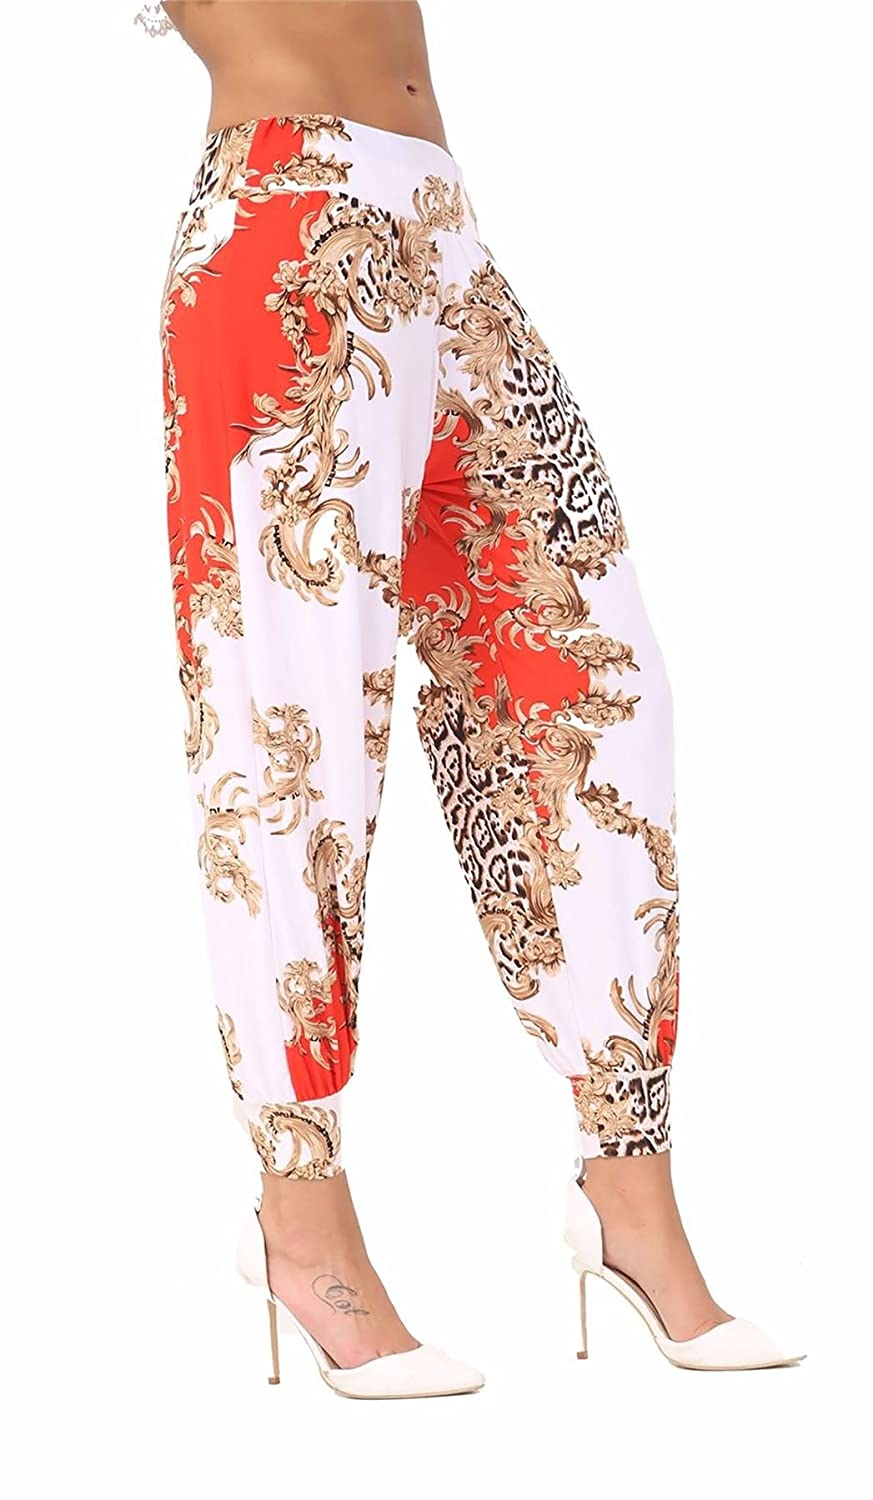 Womens Fancy Ali Baba Printed Hareem Baggy Trouser Ladies Full Length Party Wear Cuffed Pants Small/XXX-Large DIGITAL SPOT